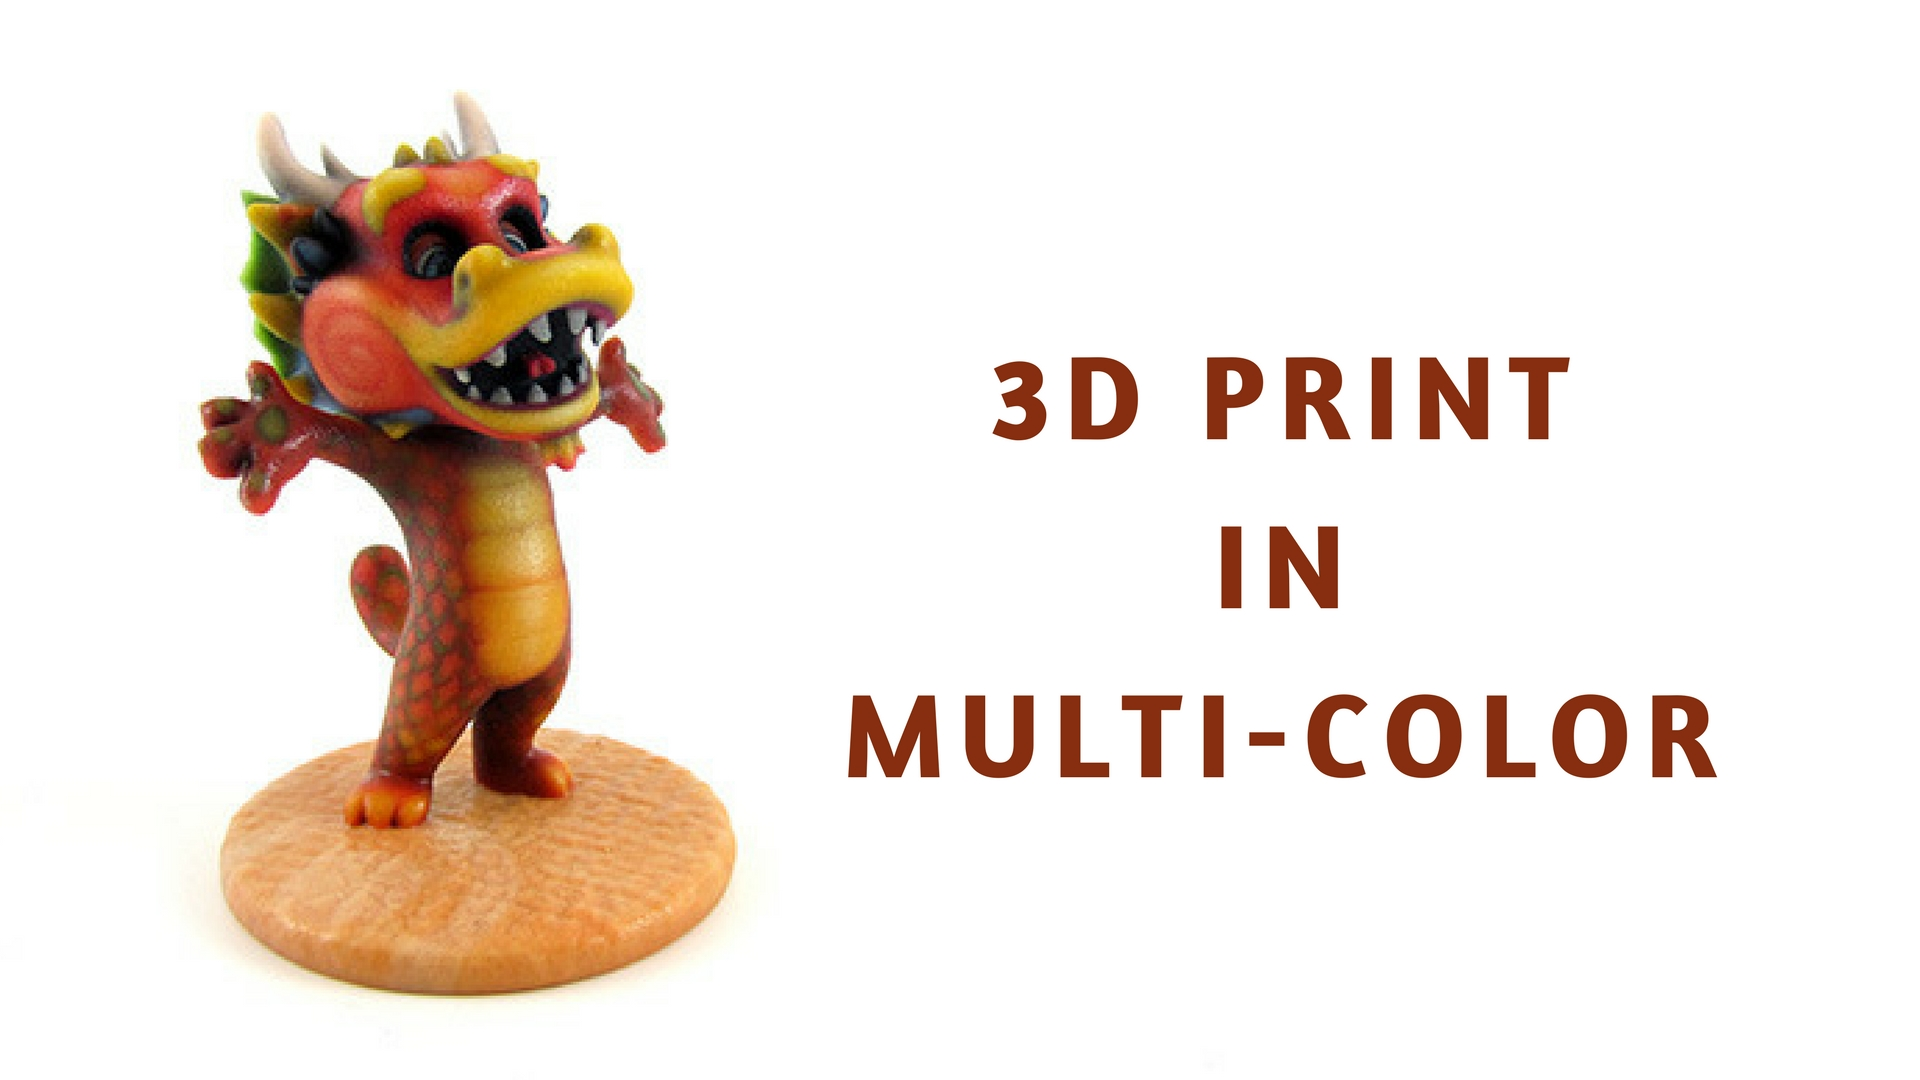 Now you can 3D print your models in multi-color!